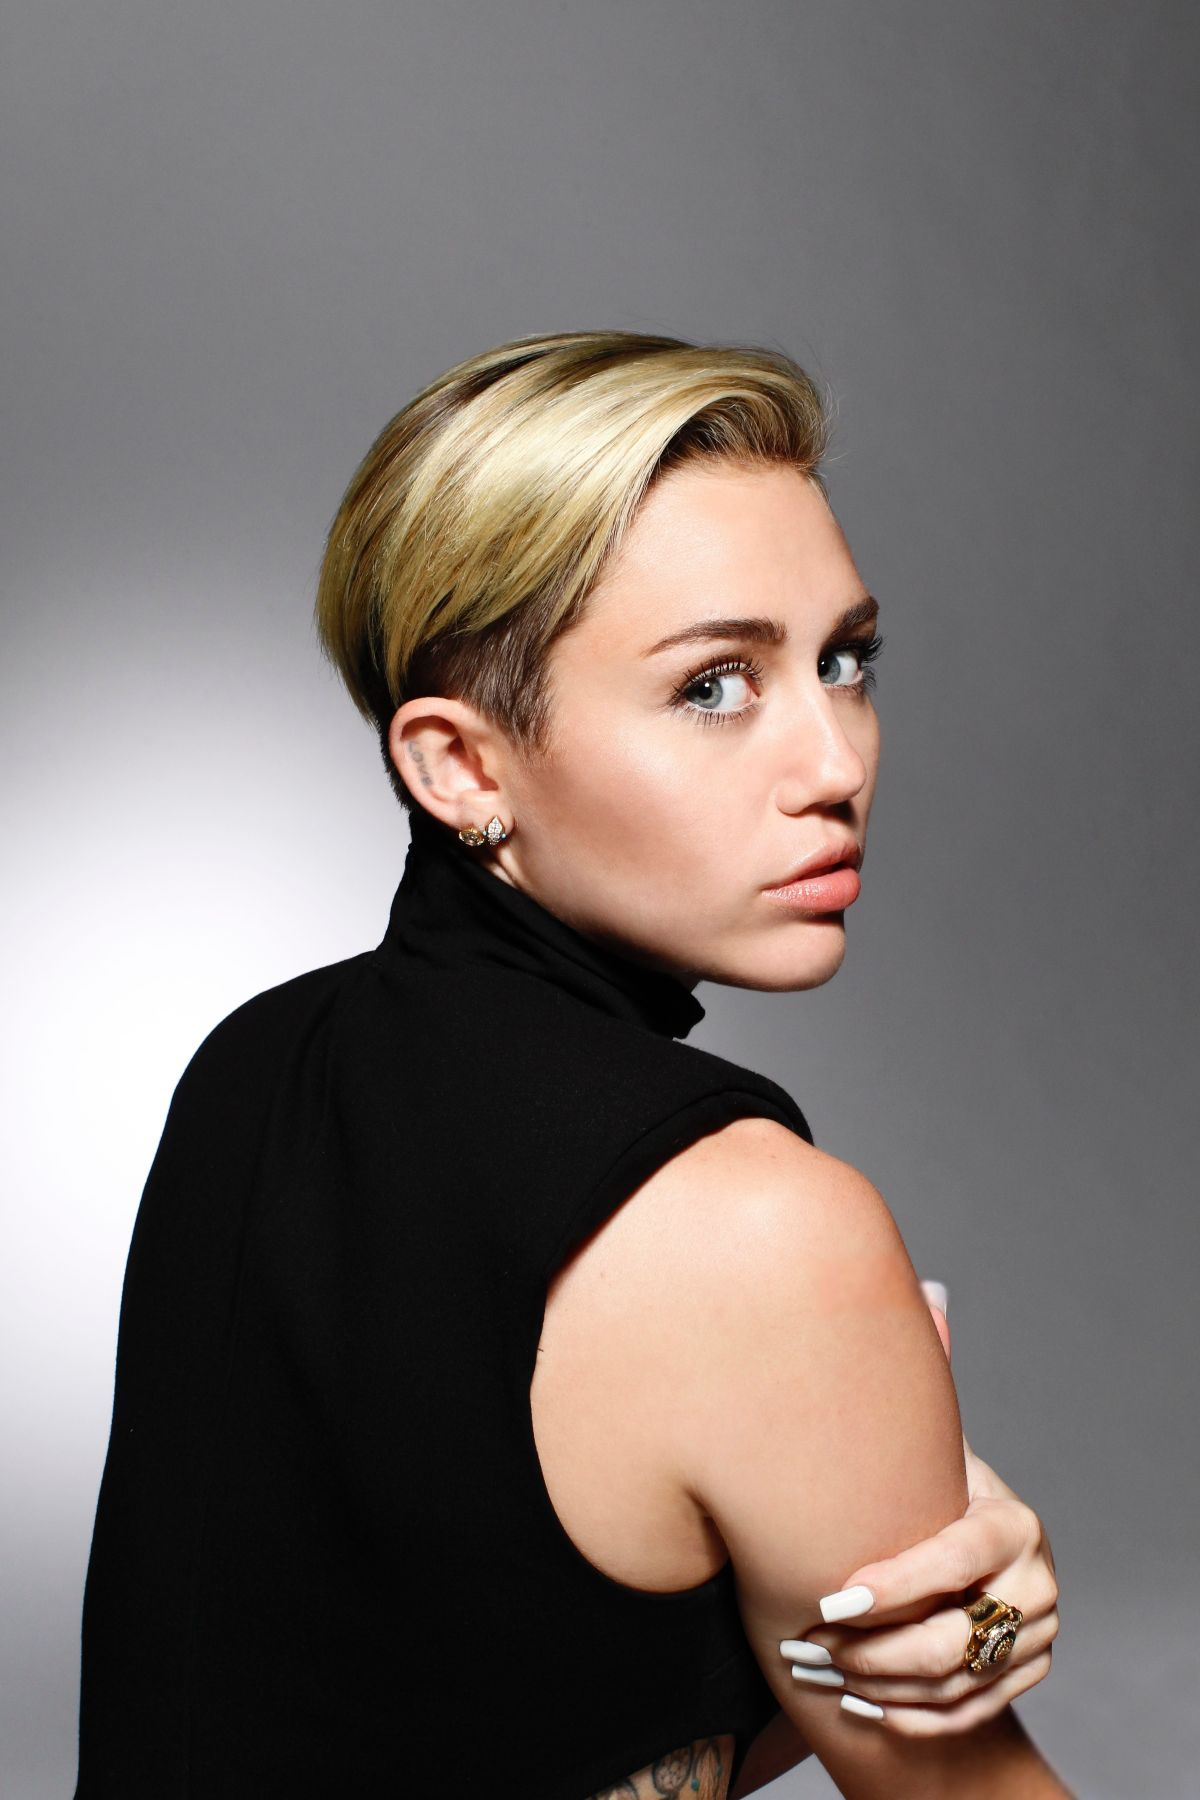 Miley Cyrus At Saturday Night Live Photoshoot by Andrew